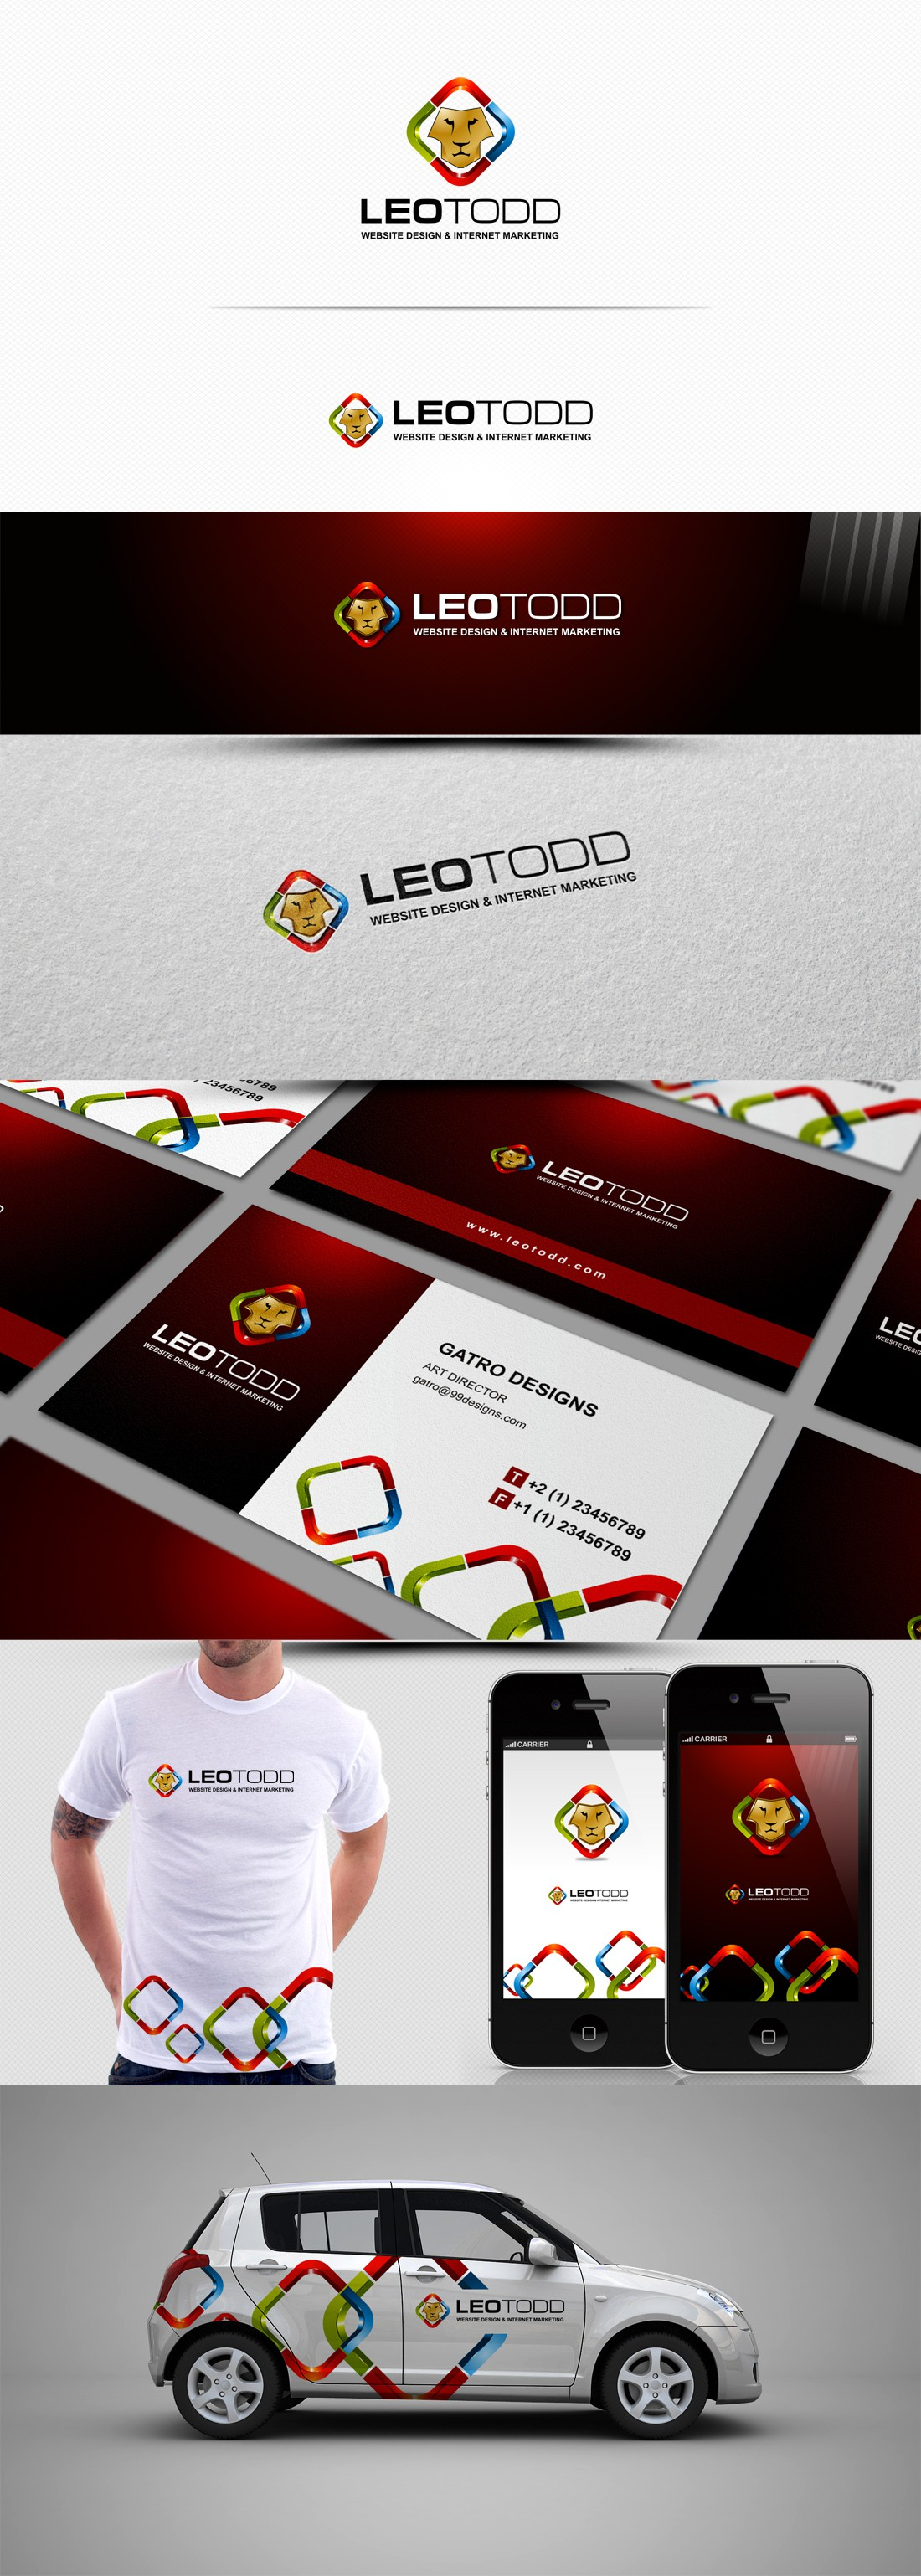 New logo wanted for Leo Todd